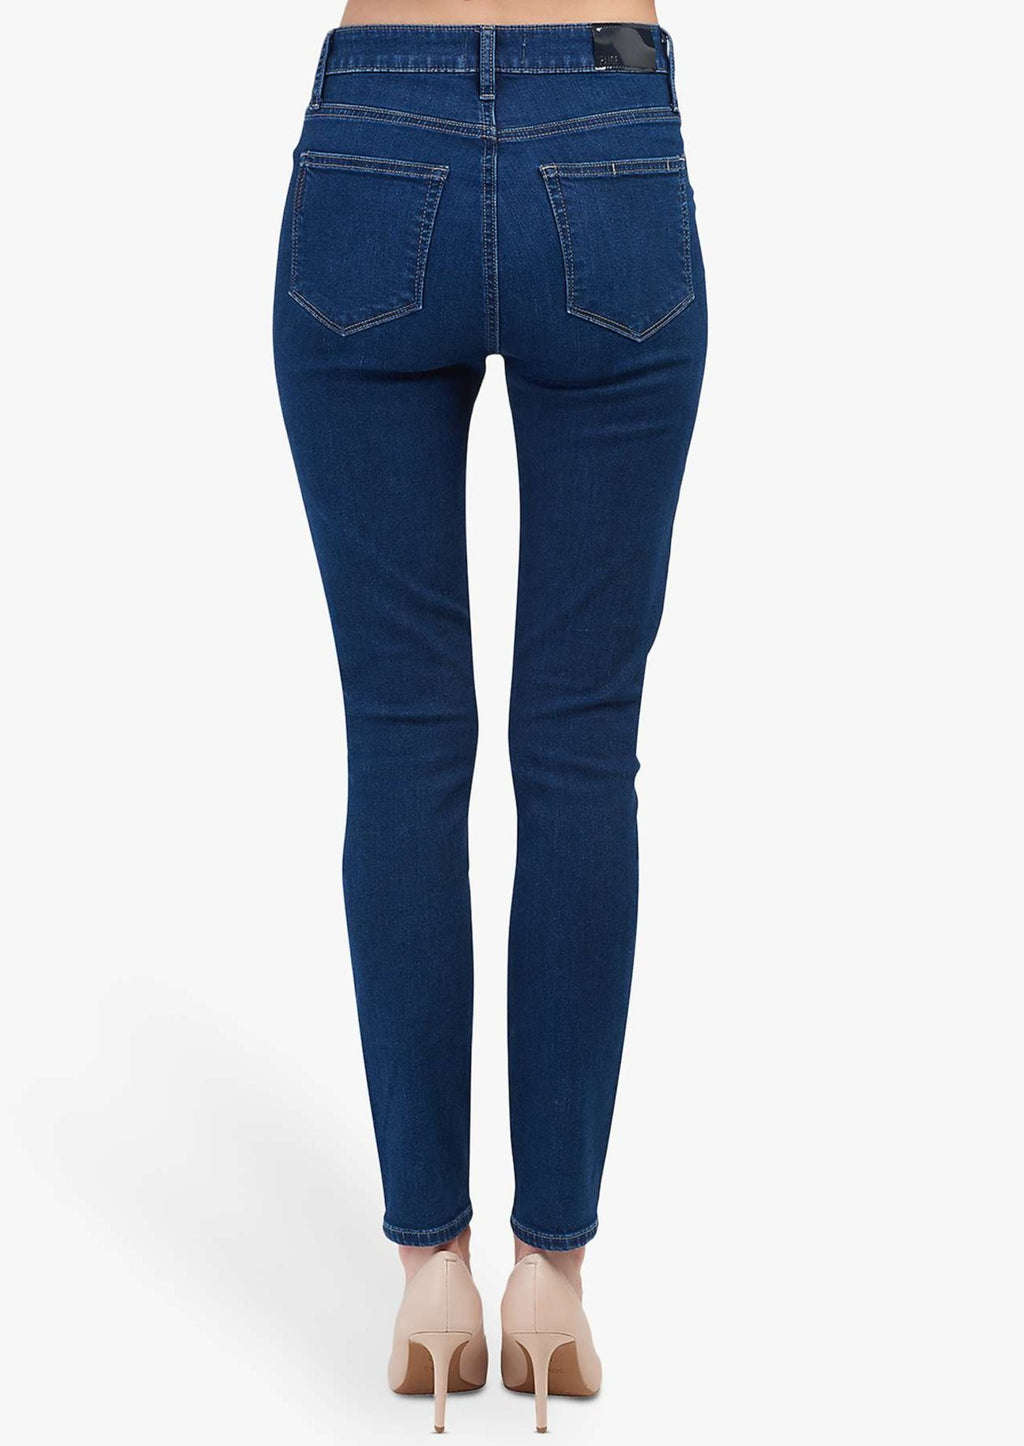 Paige Margot High Rise Ultra Skinny Jeans - Brentwood